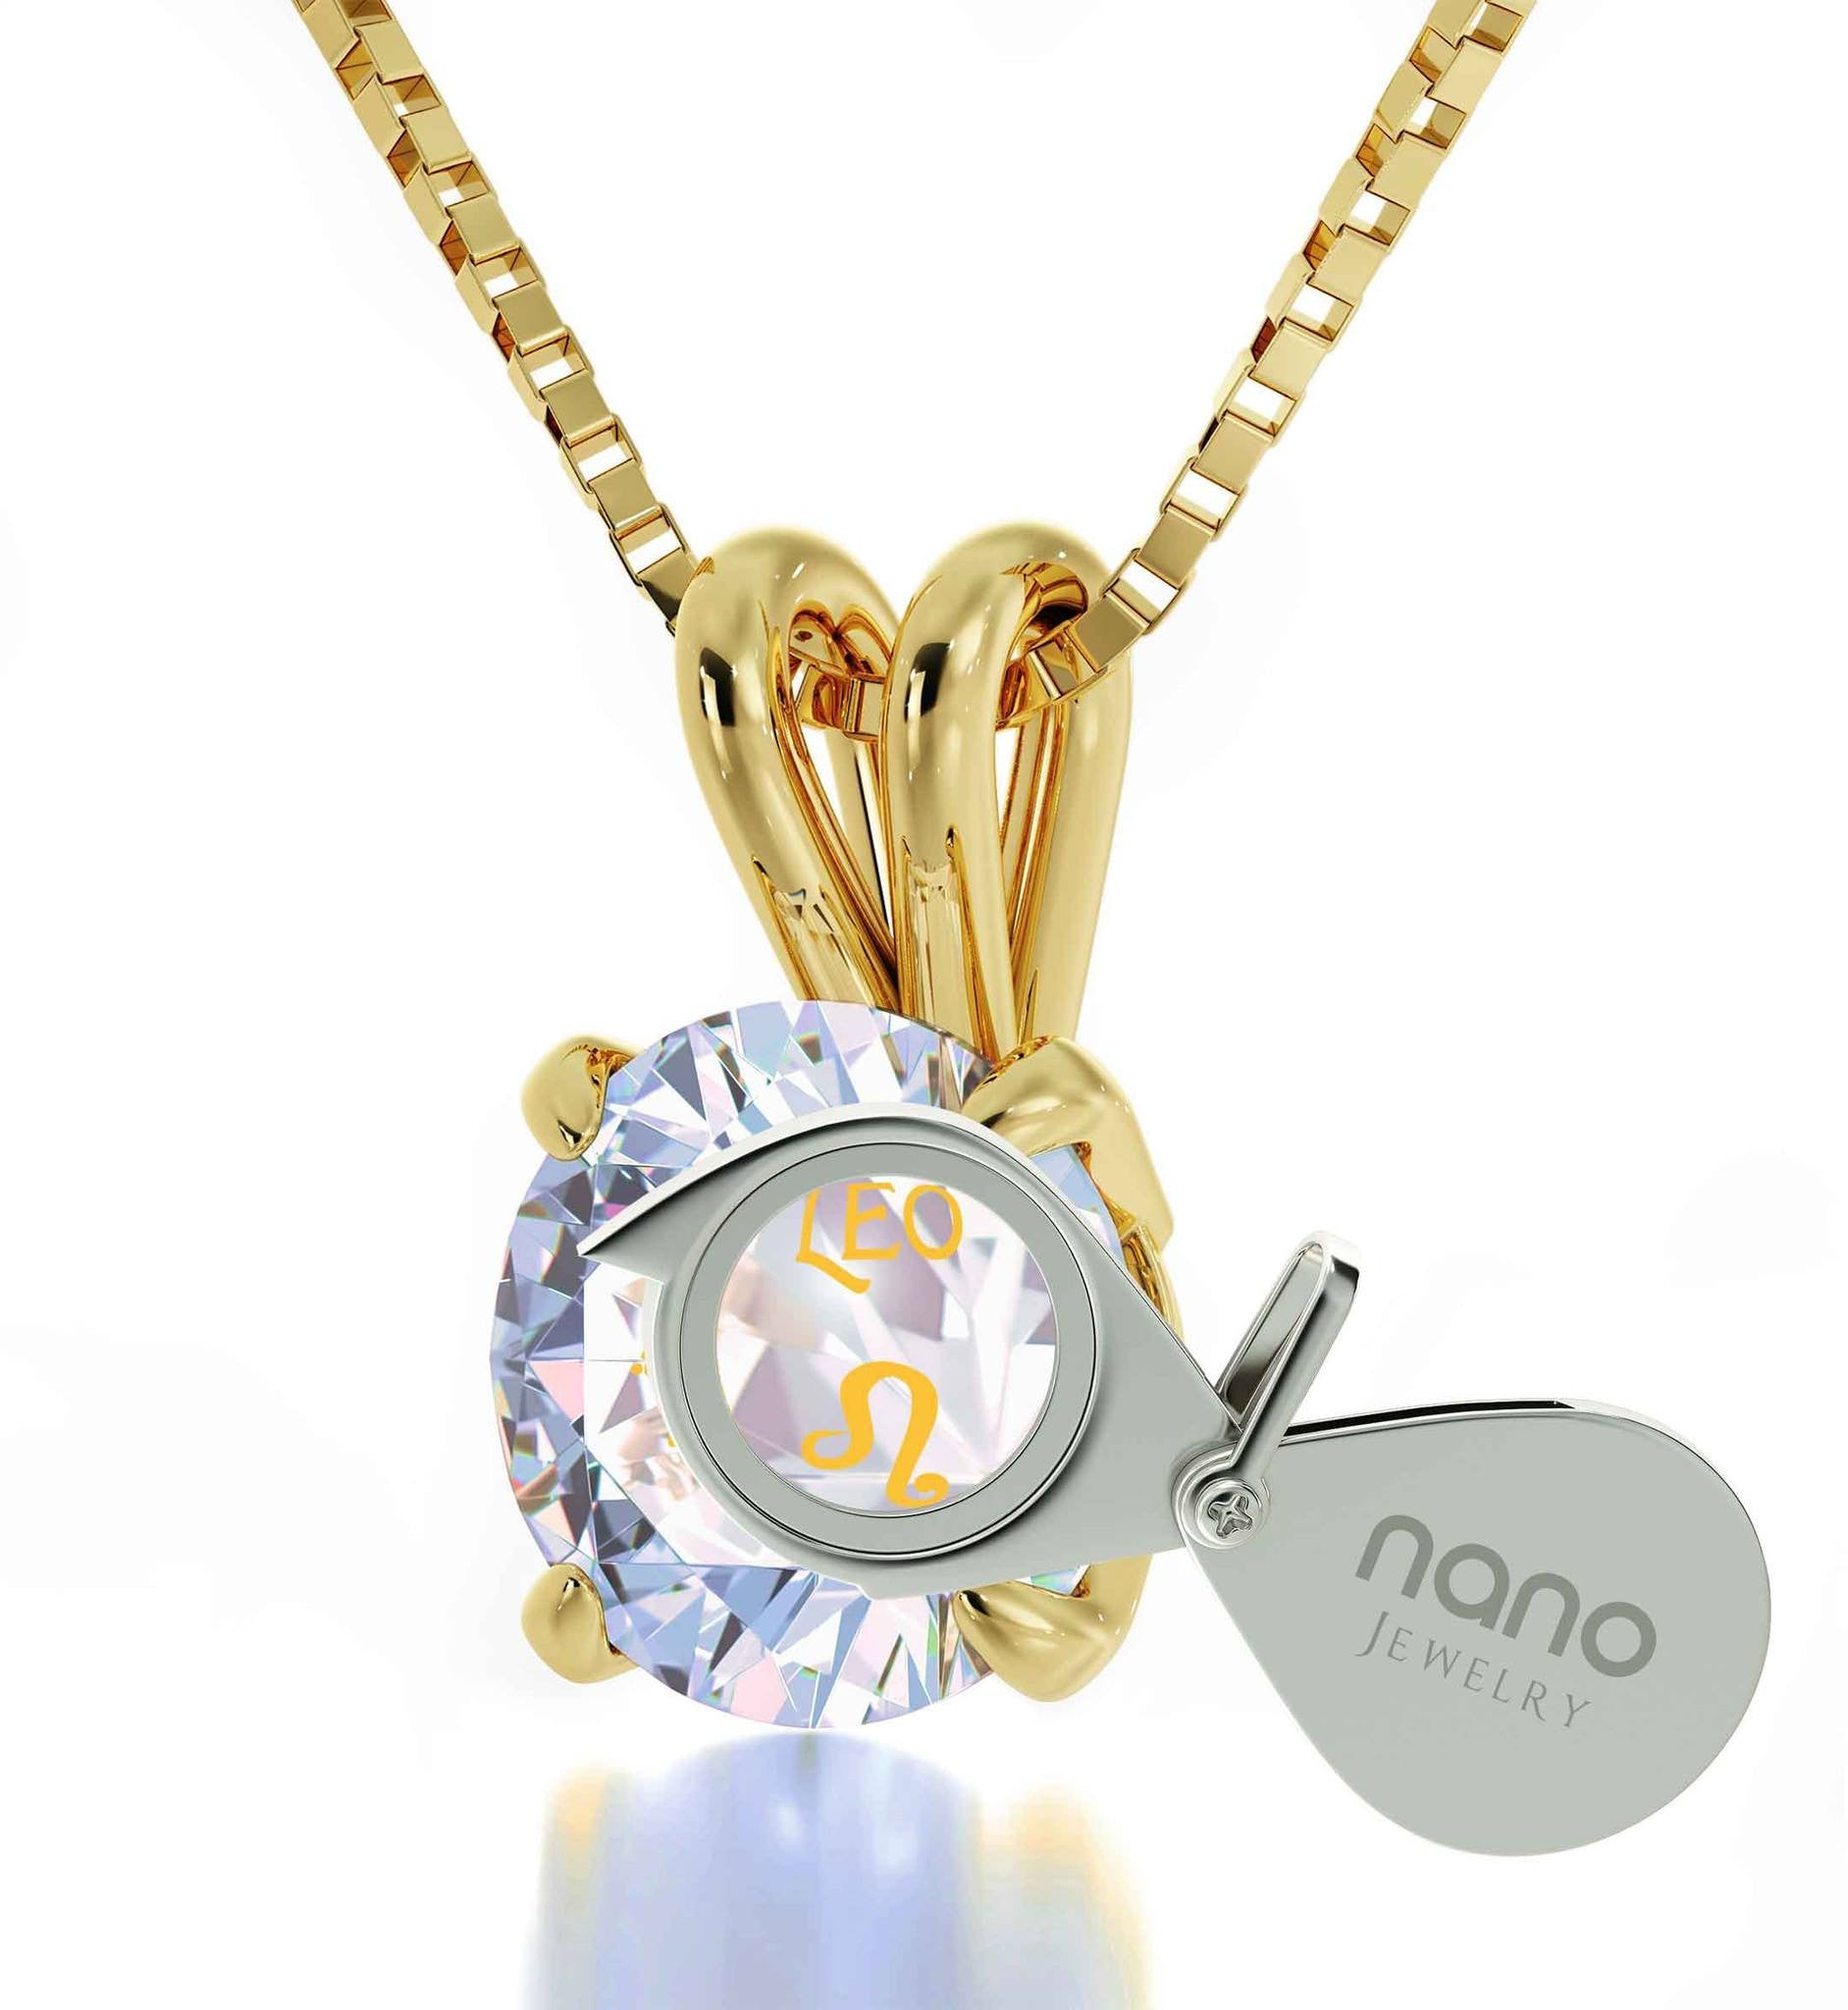 Good Gift for Girlfriend, Gold Leo Necklace. Buy Now! Nano Jewelry